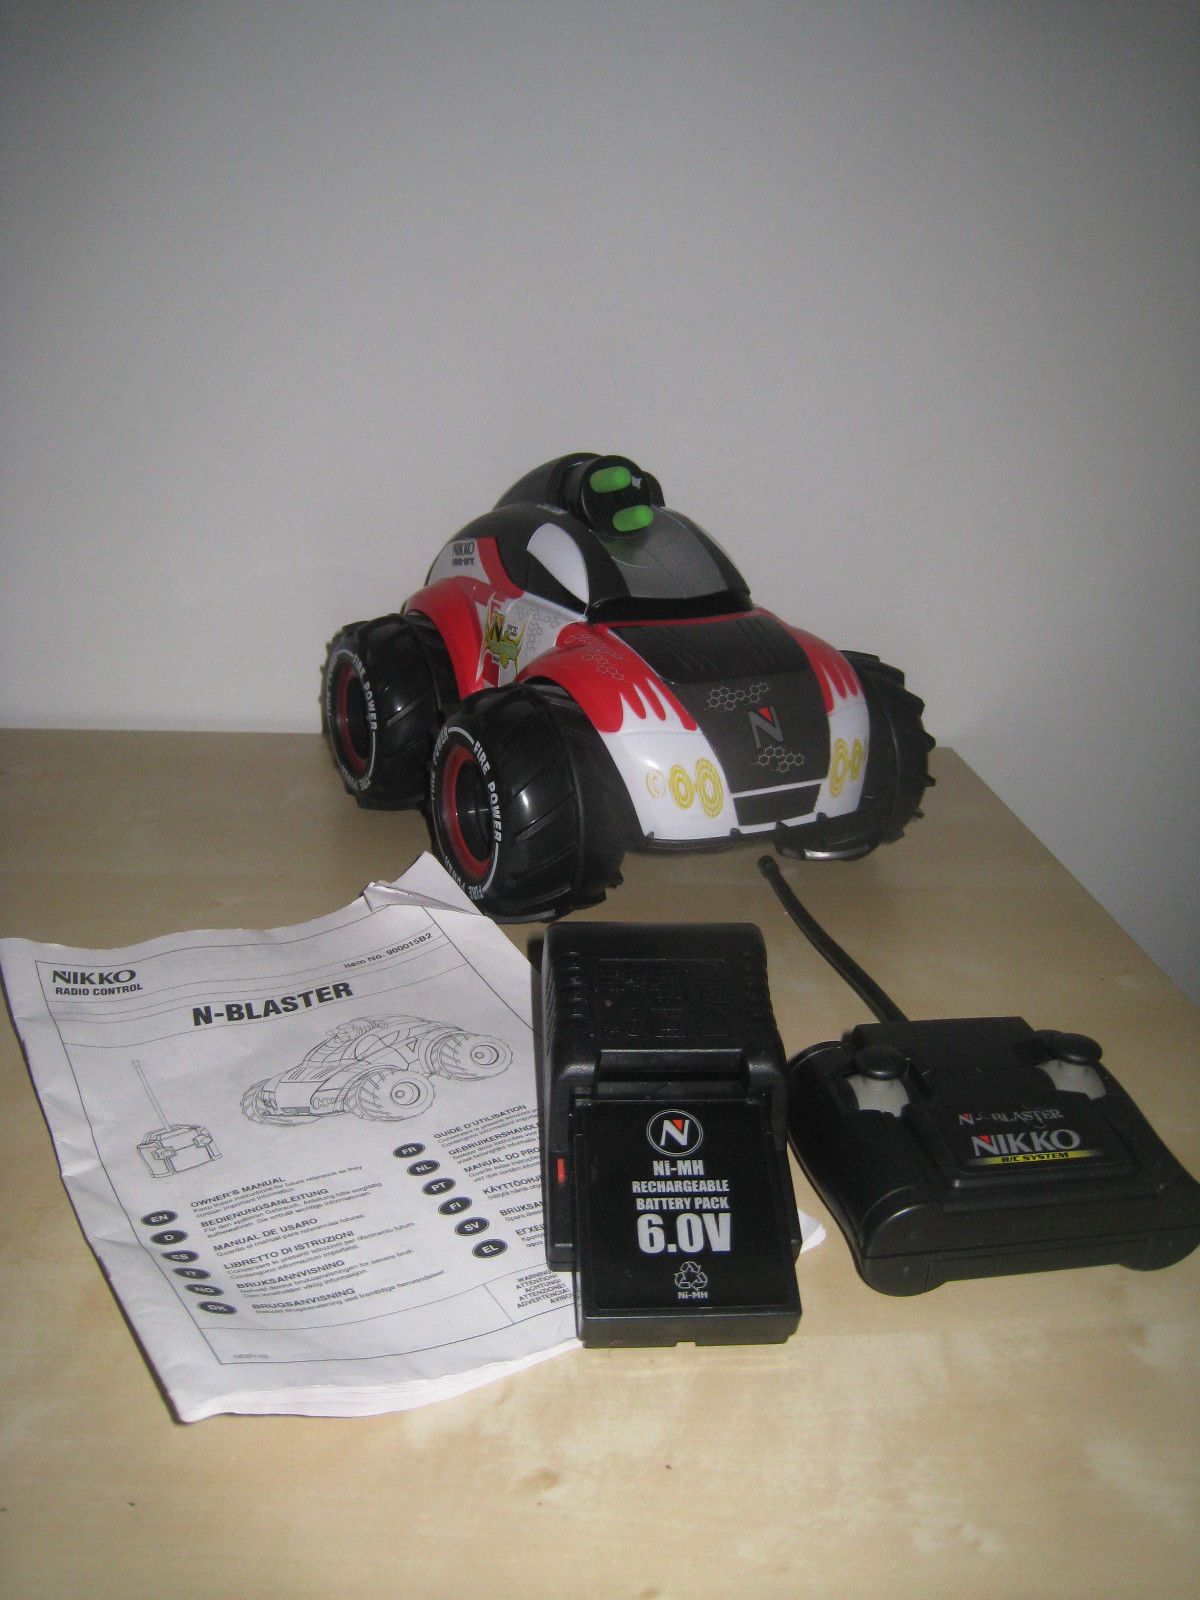 Pin by Zeppy.io on radio controlled | Rc model, Remote ...